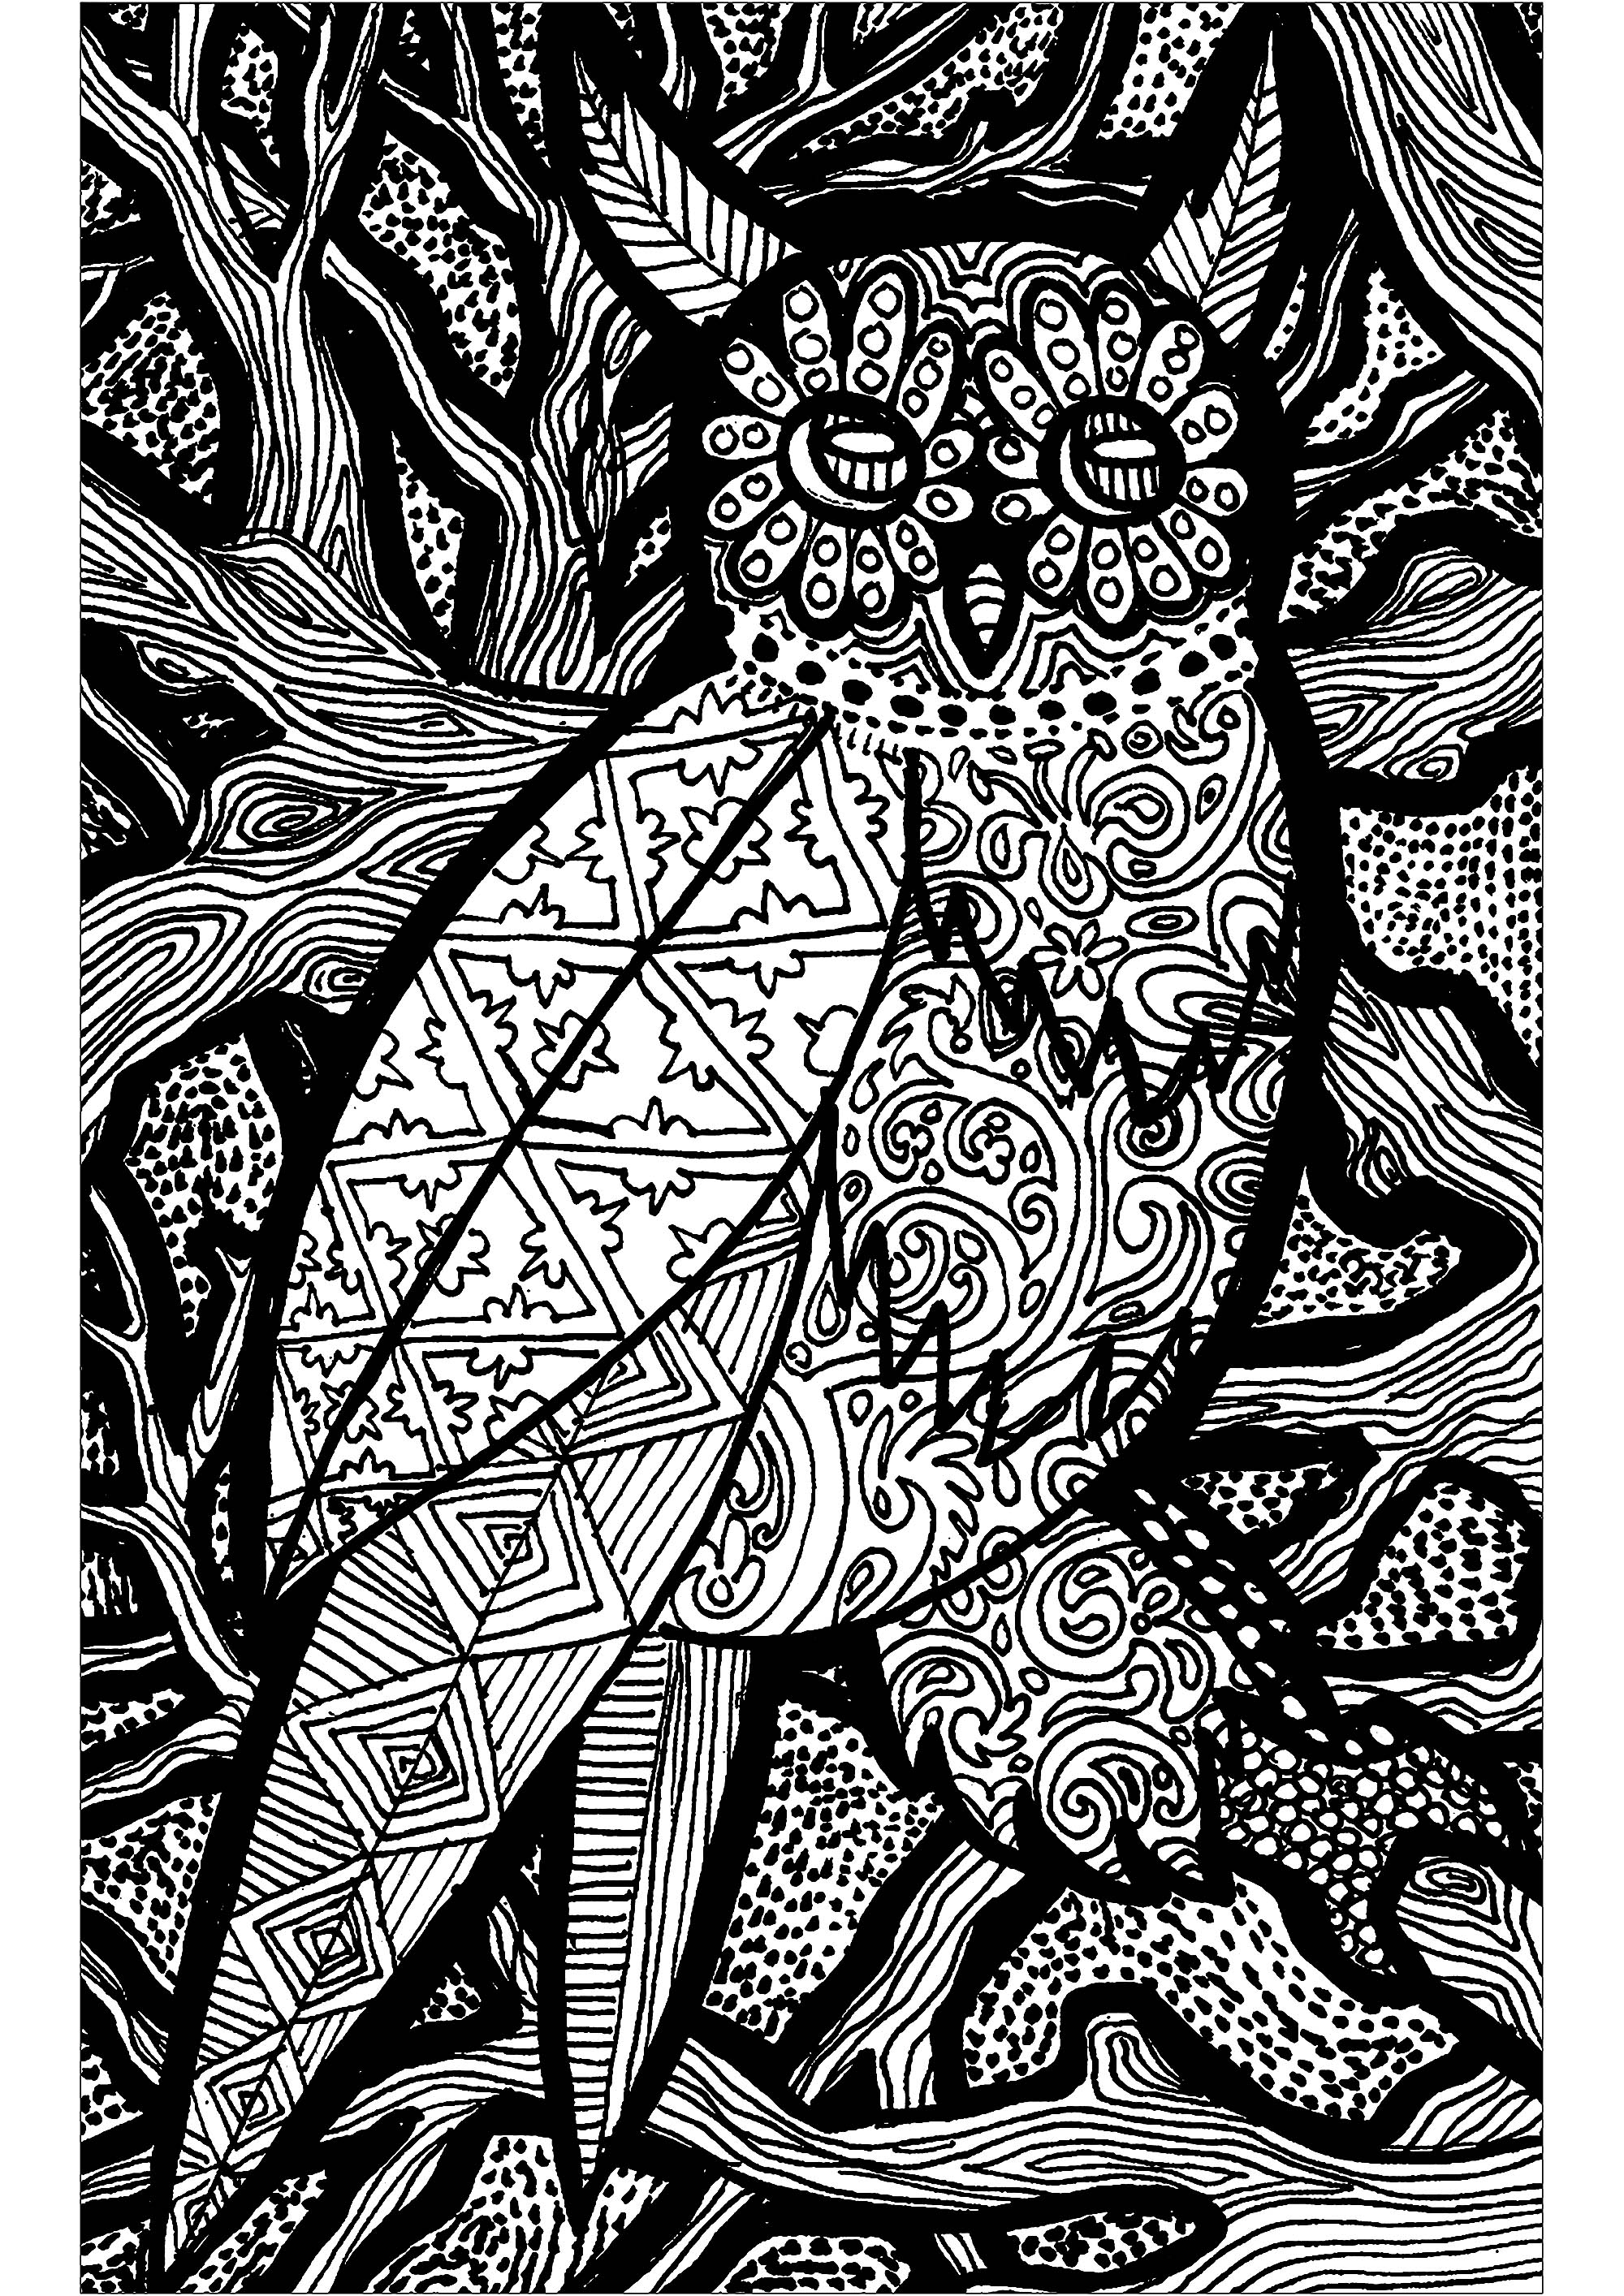 Look at this beautiful owl in its Zentangle forest !